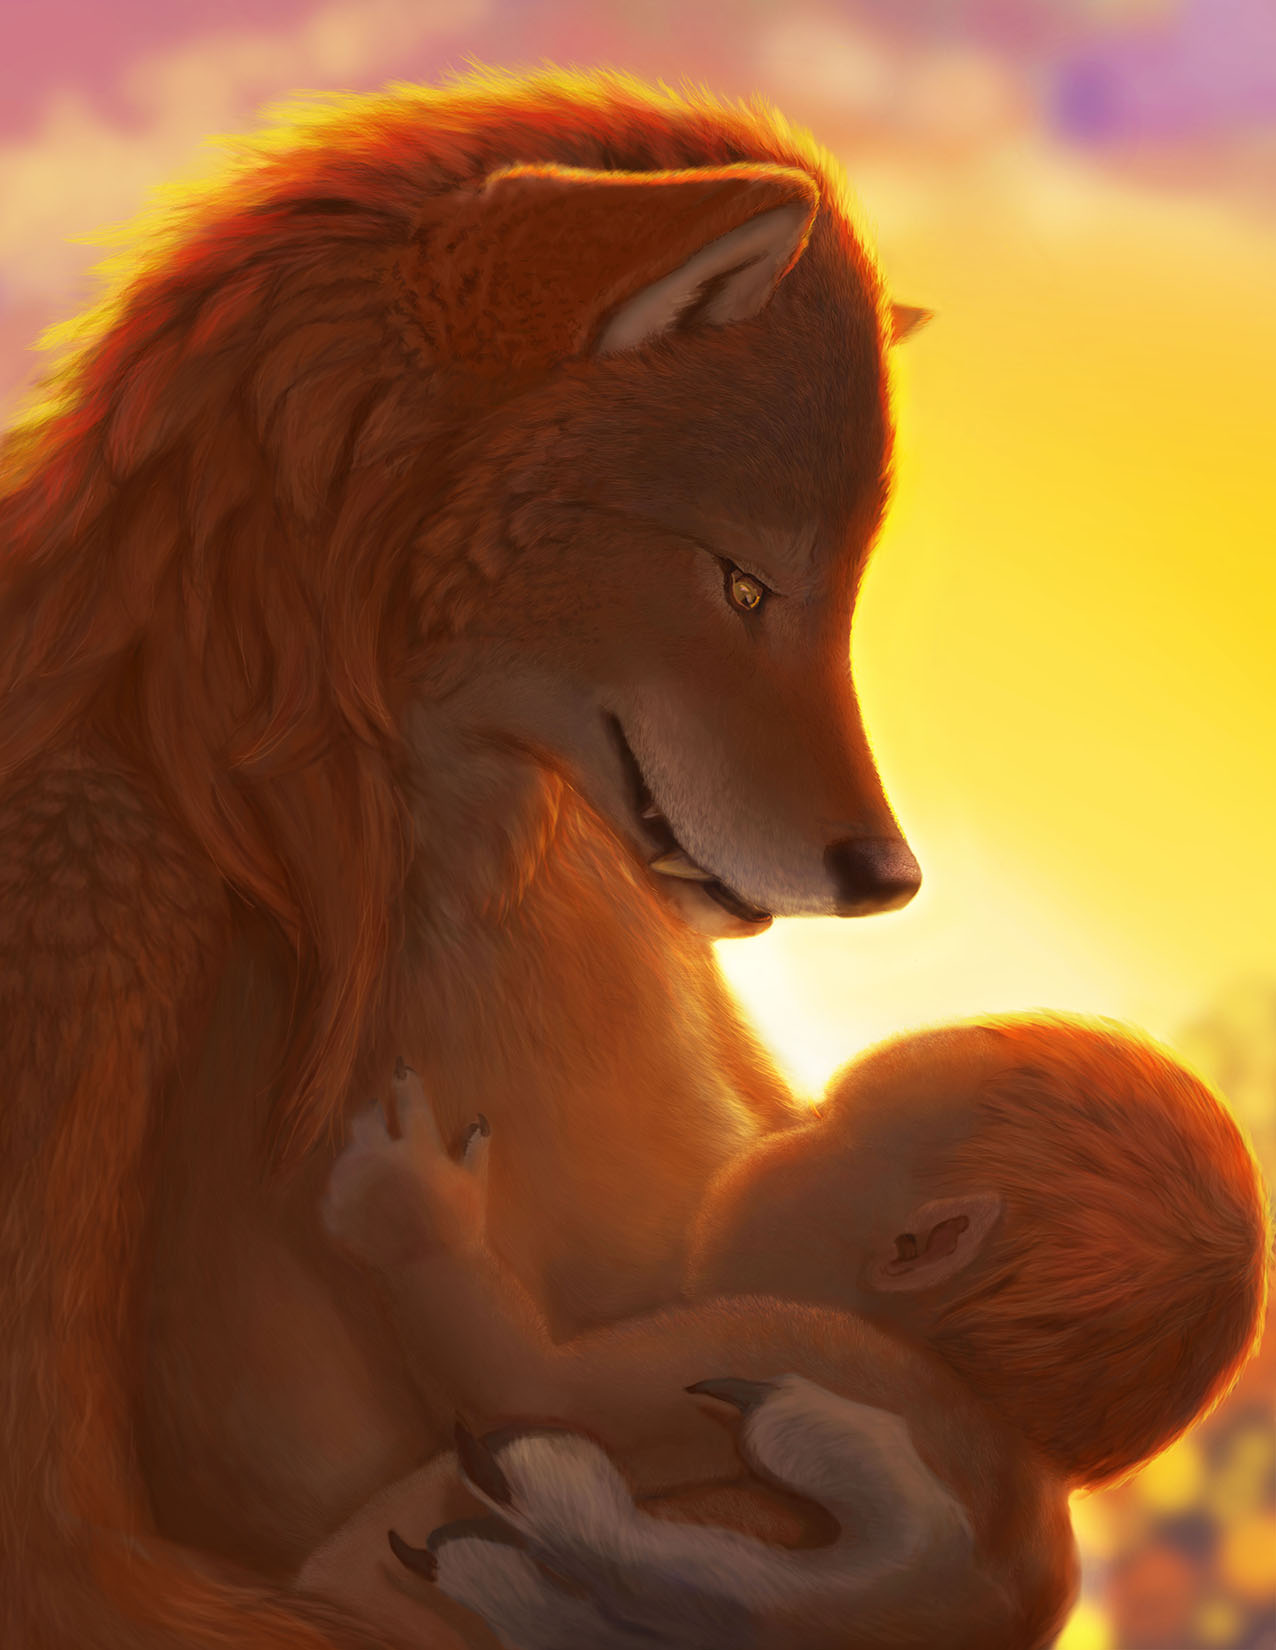 A A werewolf mother nurses a tiny newborn in the light of the dawn.